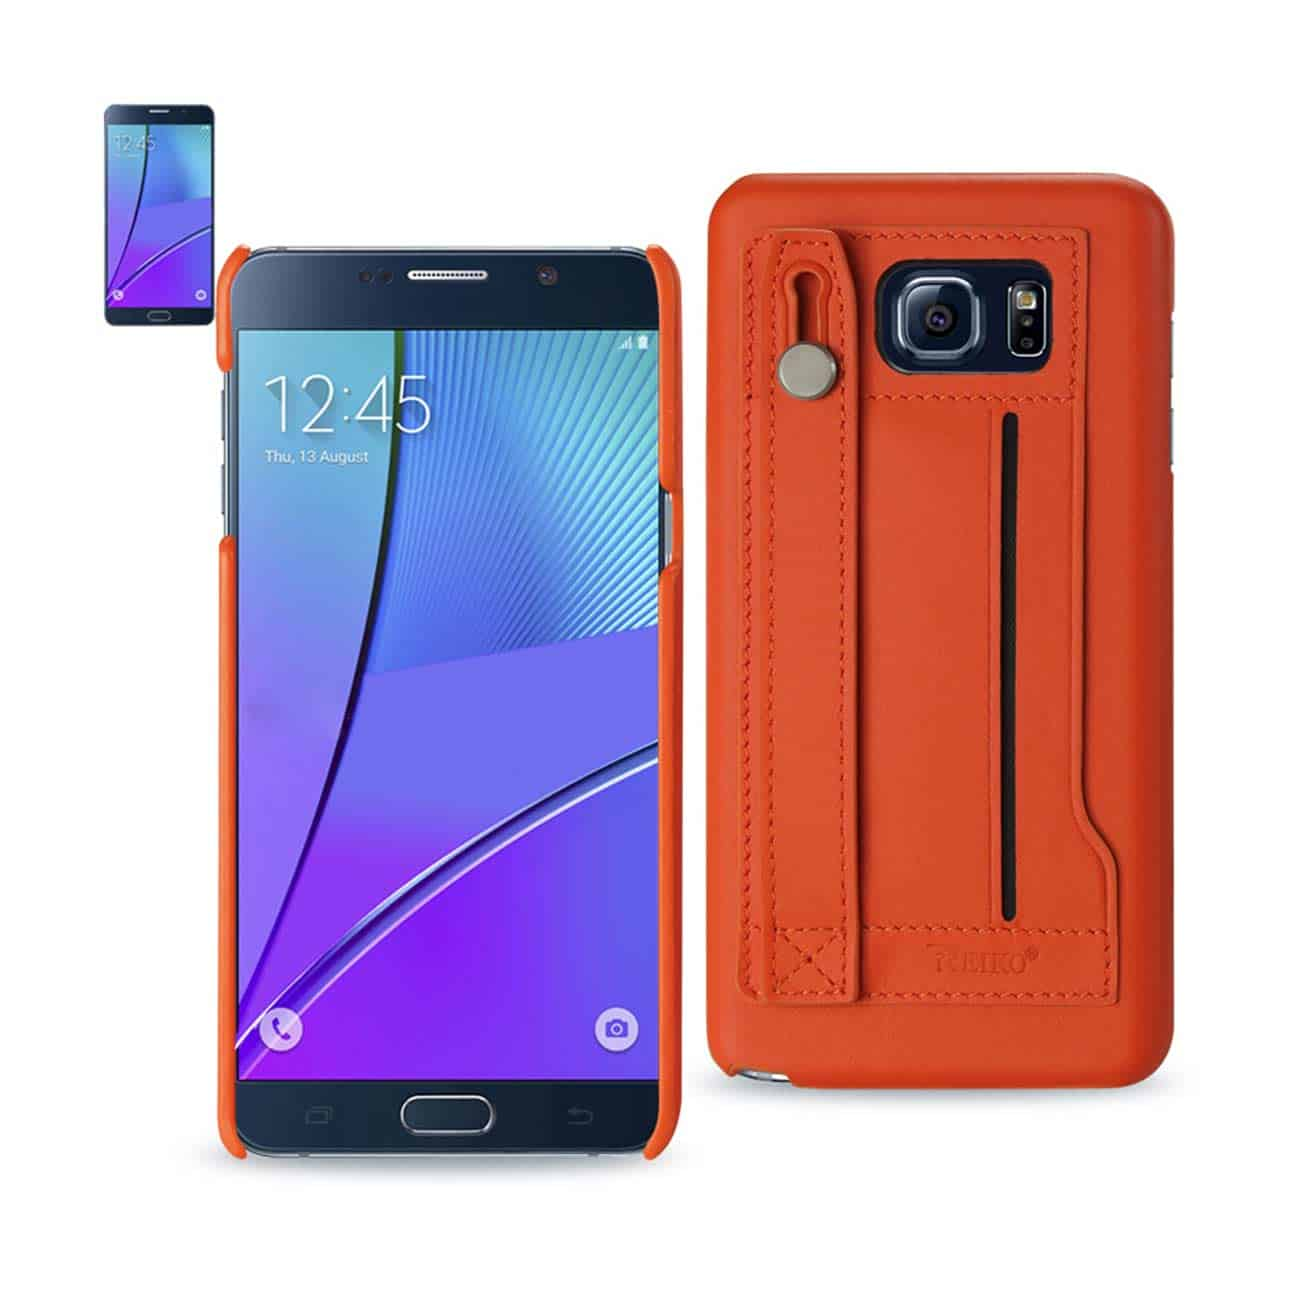 SAMSUNG GALAXY NOTE 5 GENUINE LEATHER HAND STRAP CASE IN TANGERINE